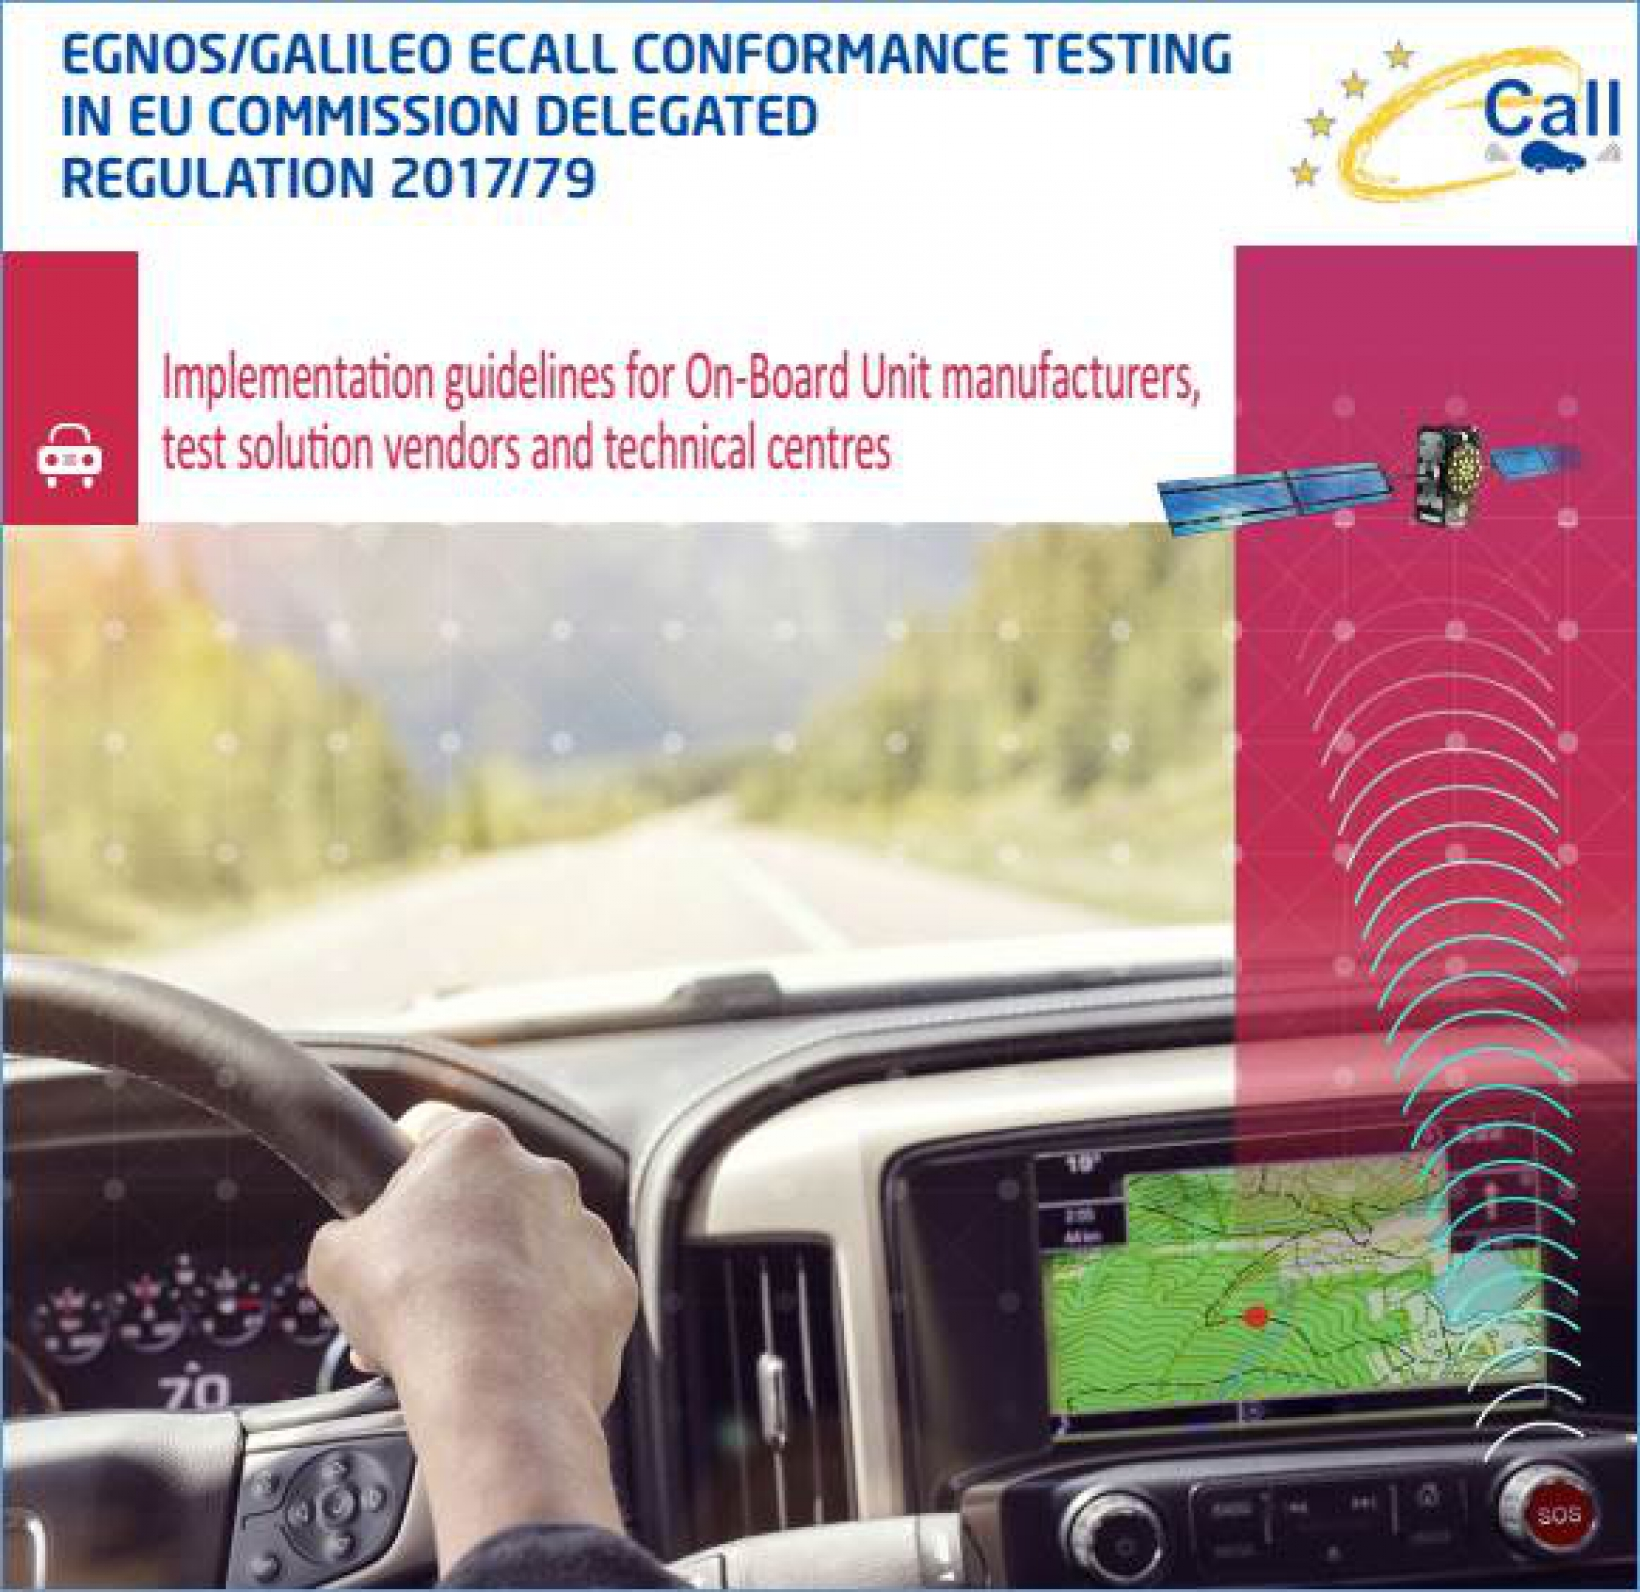 The Implementing Guidelines Will Facilitate Implementation Of Ecall Testing By Technical Centres In Charge Issuing Ec Type Roval For